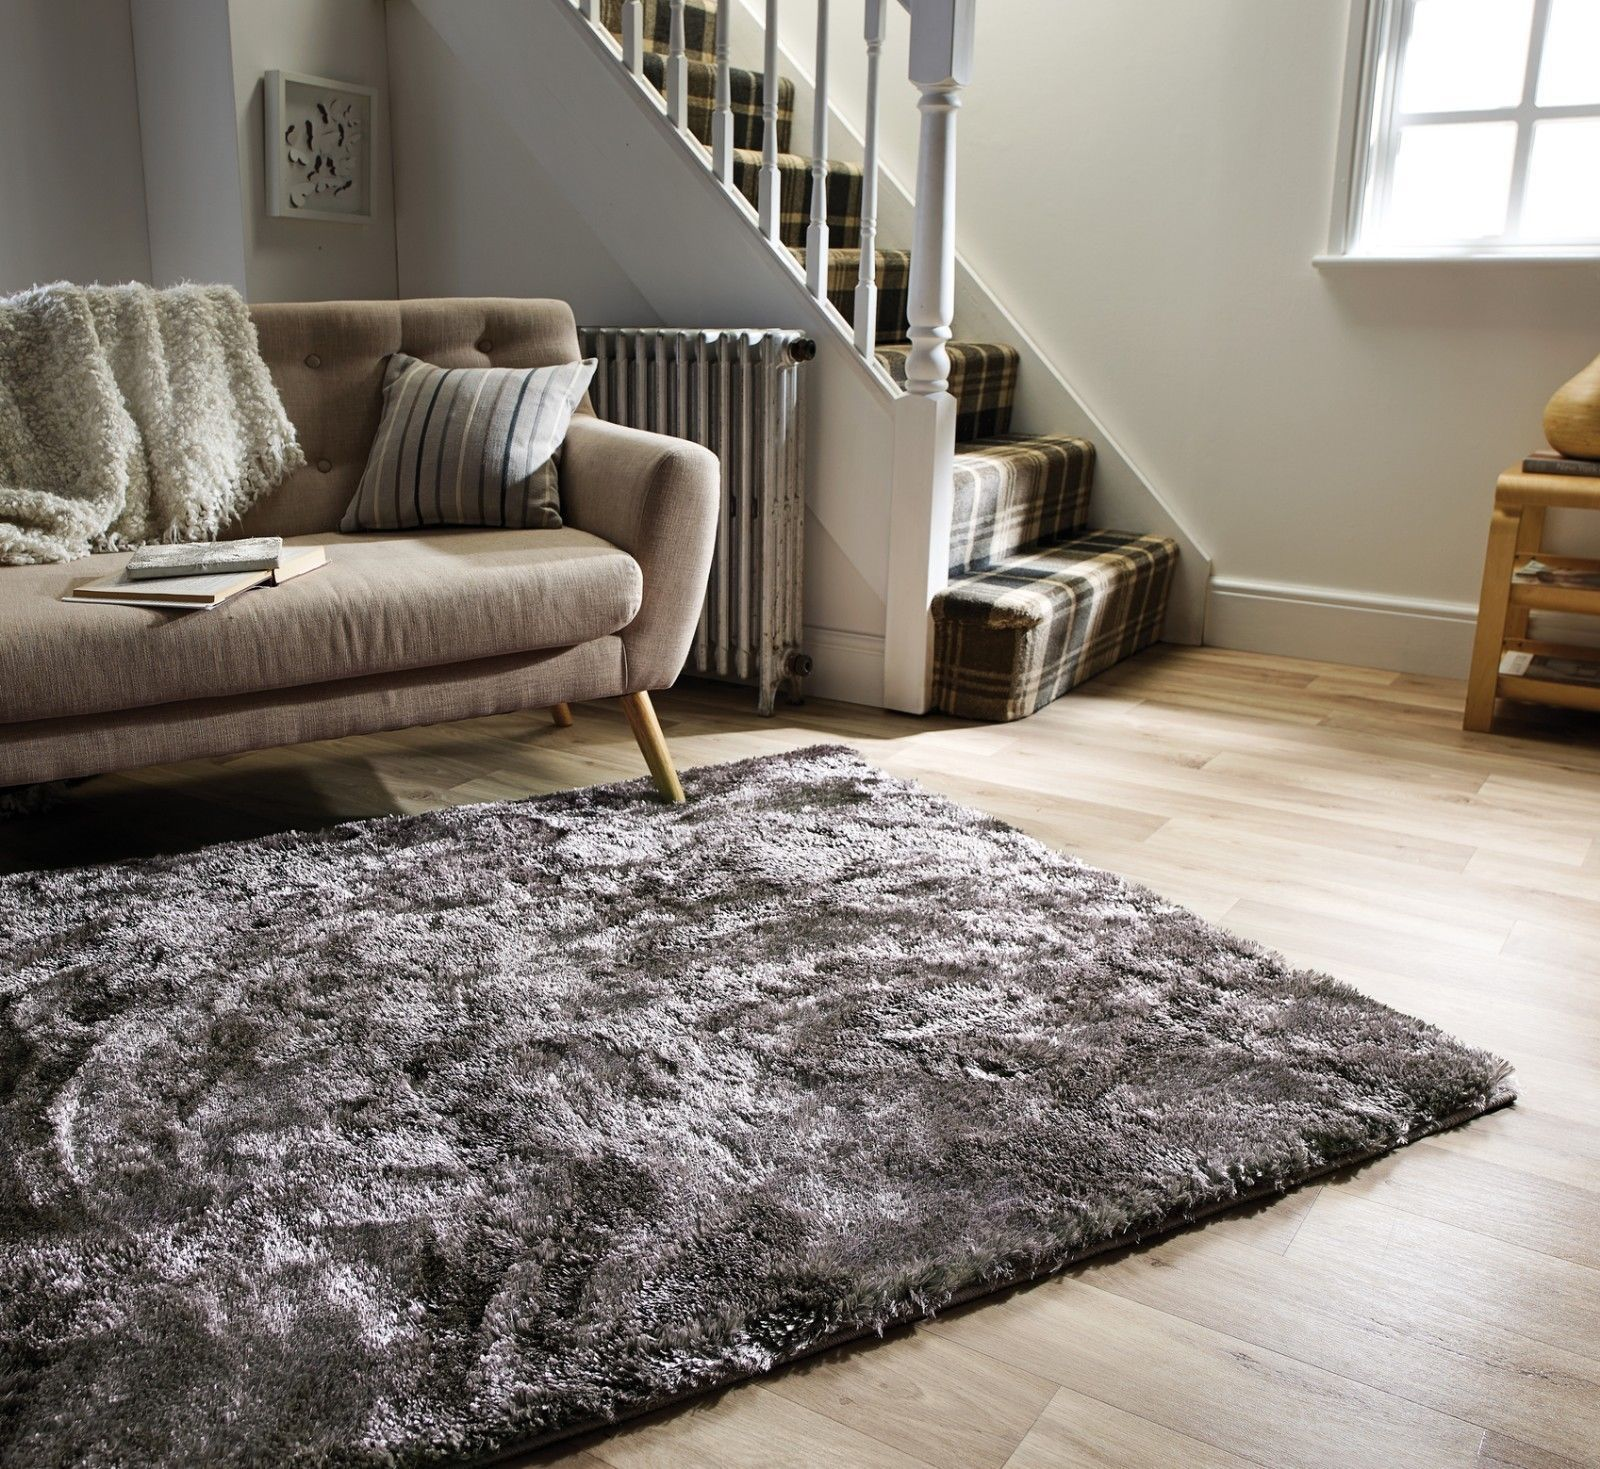 Details About Silky Soft Thick Pile Silver Grey Shaggy Crushed Velvet Effect Serenity Rug Rugs In Living Room Fur Rug Living Room Shaggy Rug